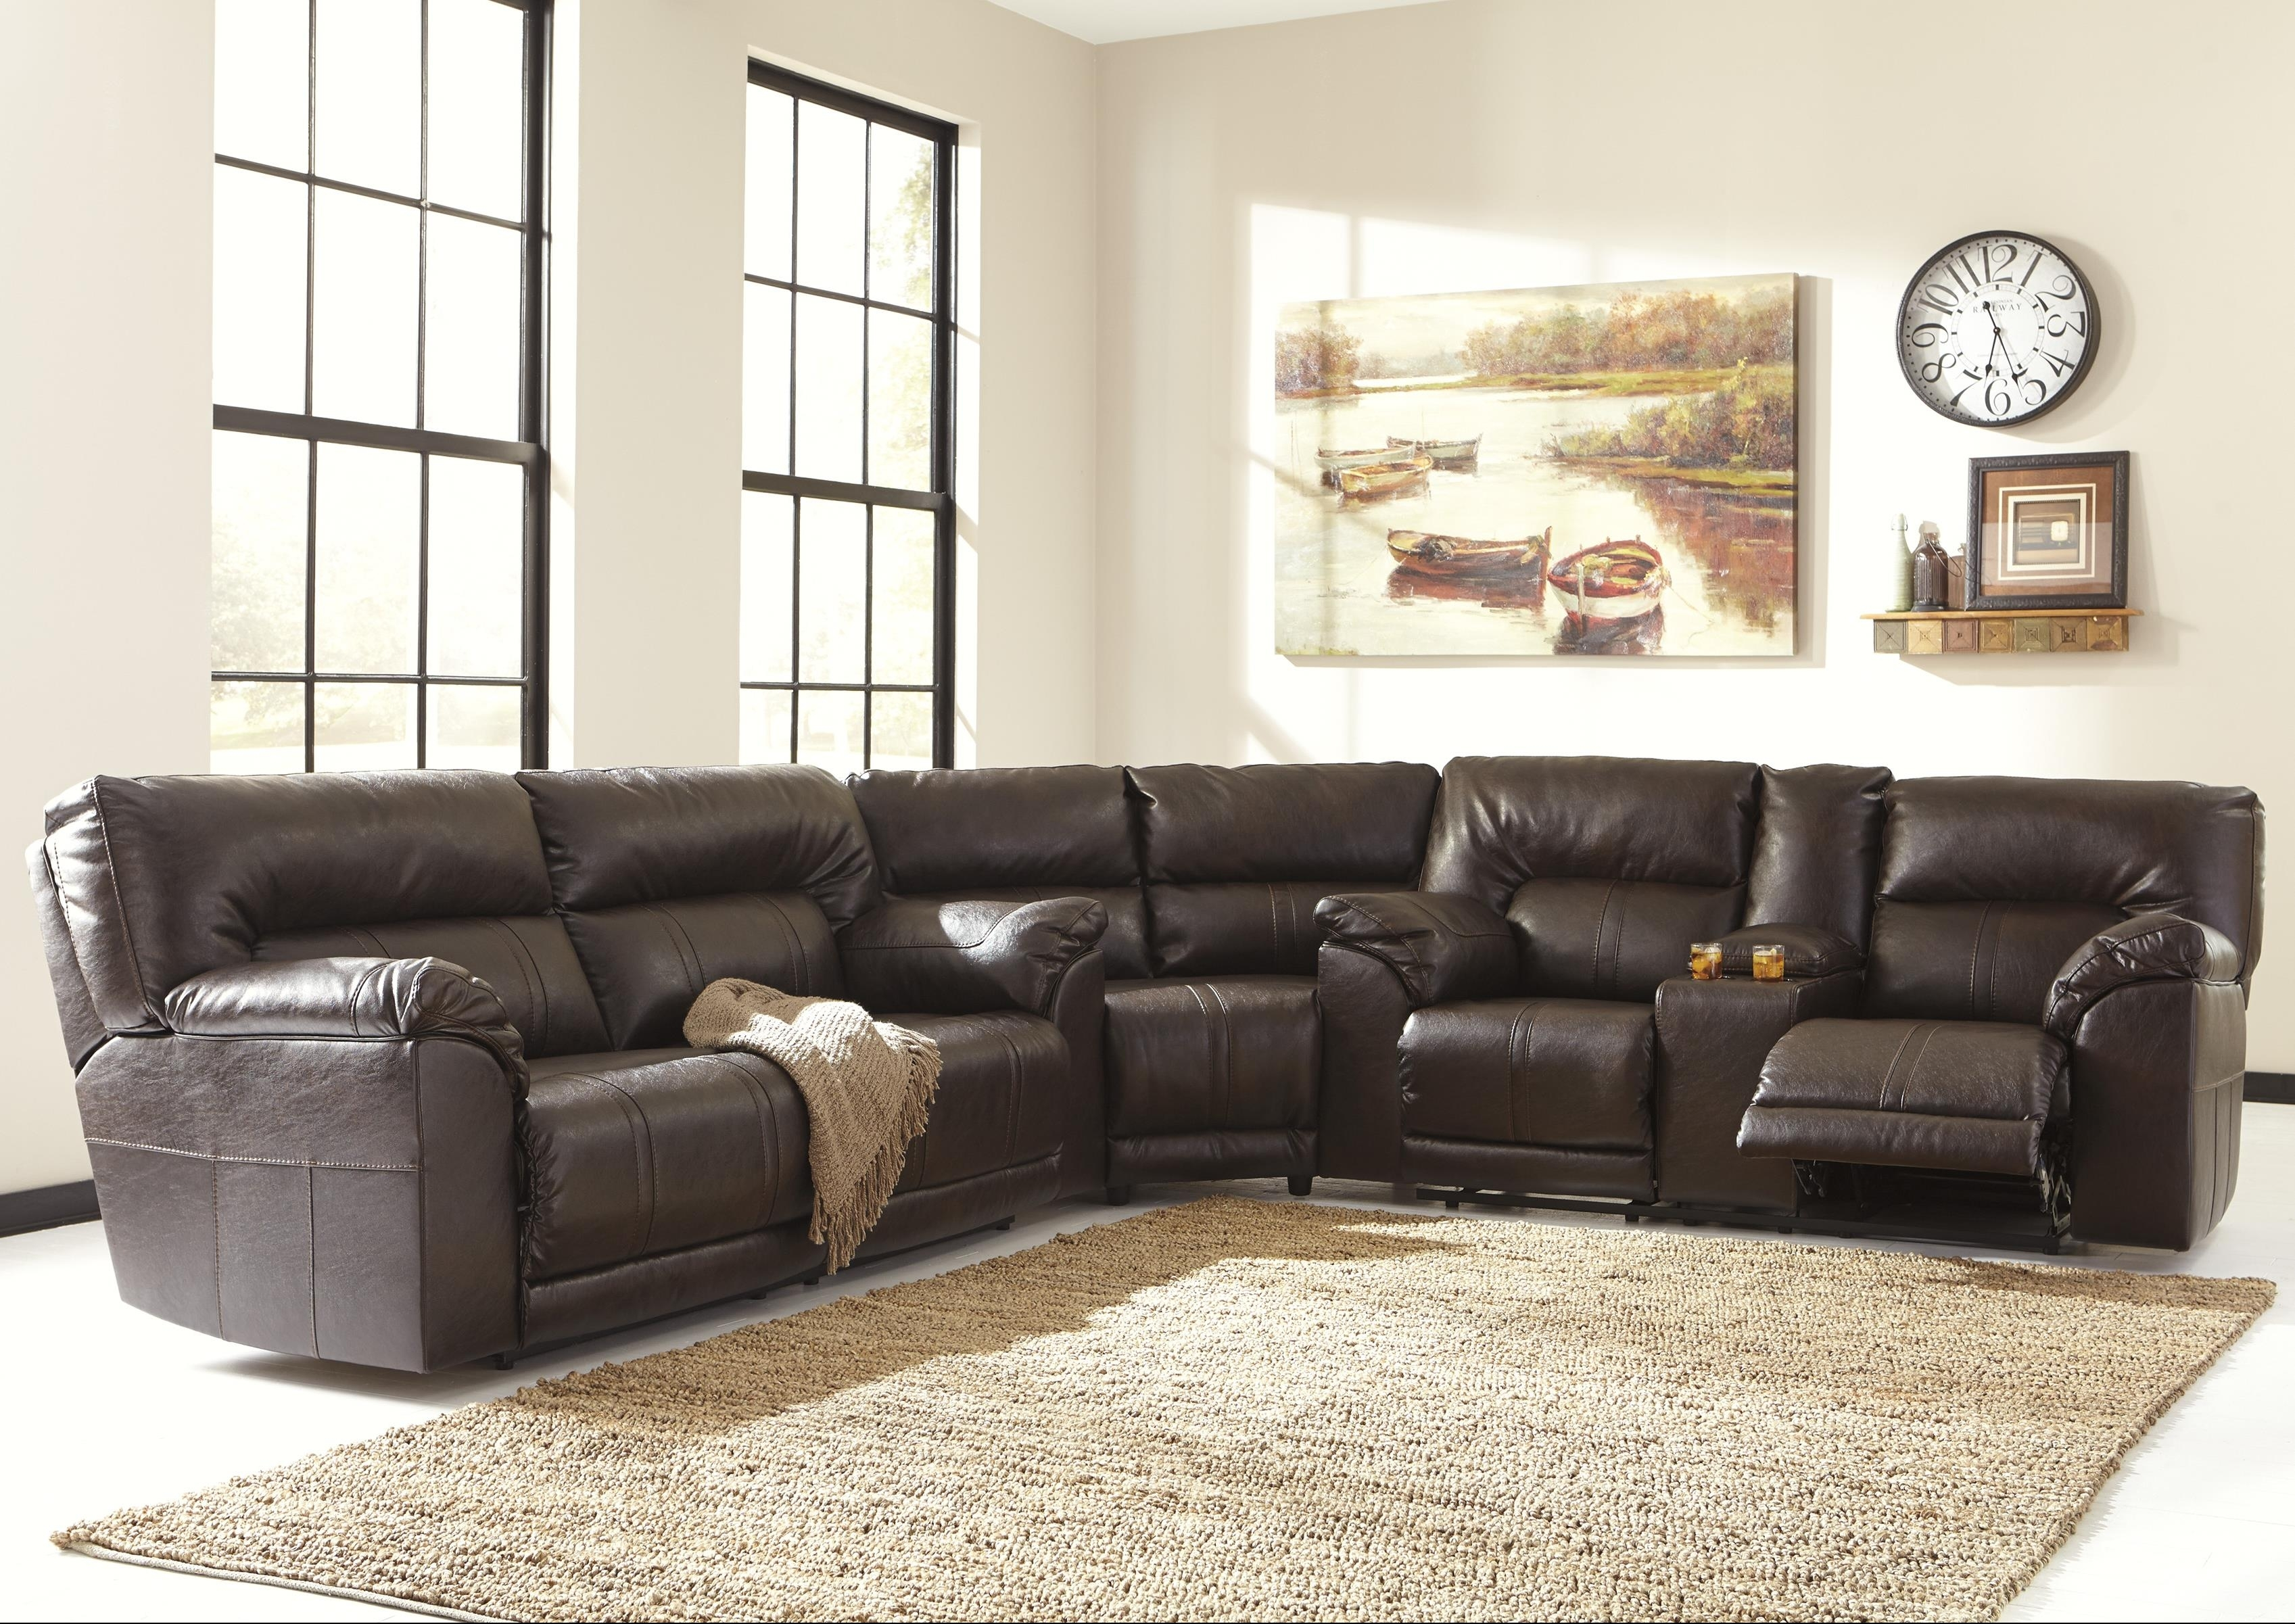 3 Piece Reclining Sectionalbenchcraft | Wolf And Gardiner Wolf For Jackson Tn Sectional Sofas (Image 1 of 10)